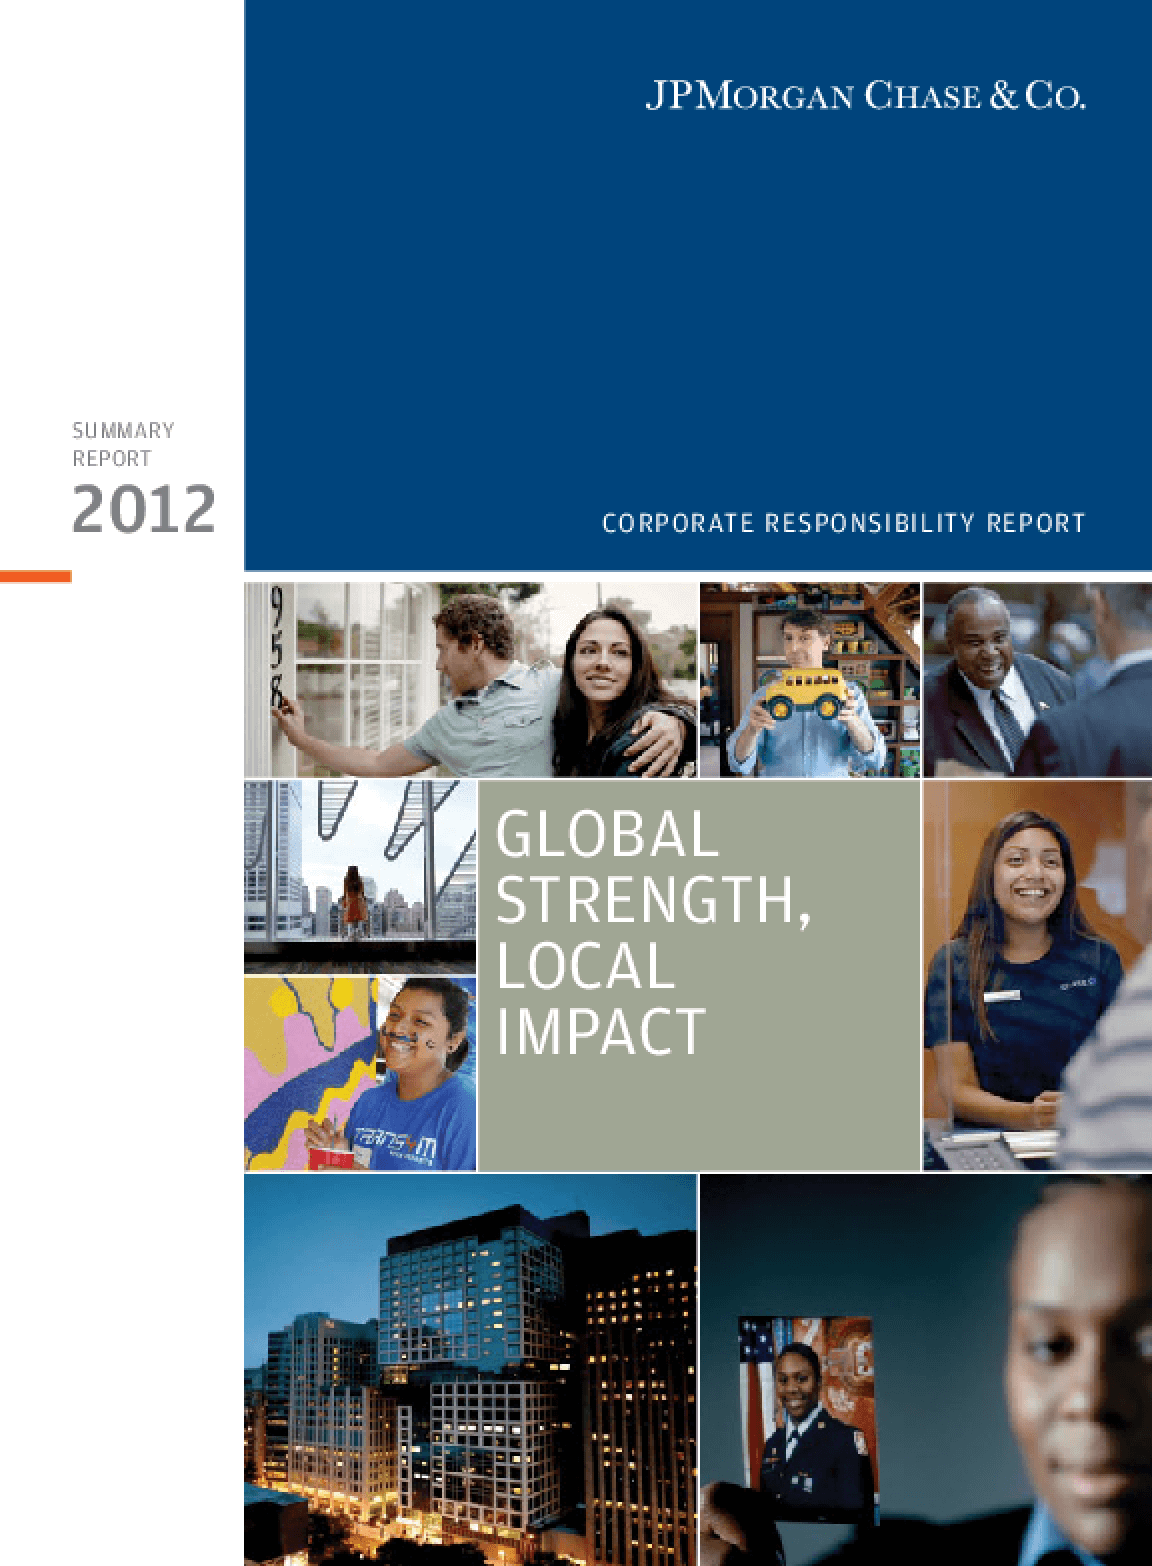 Global Strength, Local Impact: Corporate Responsibility Summary Report 2012